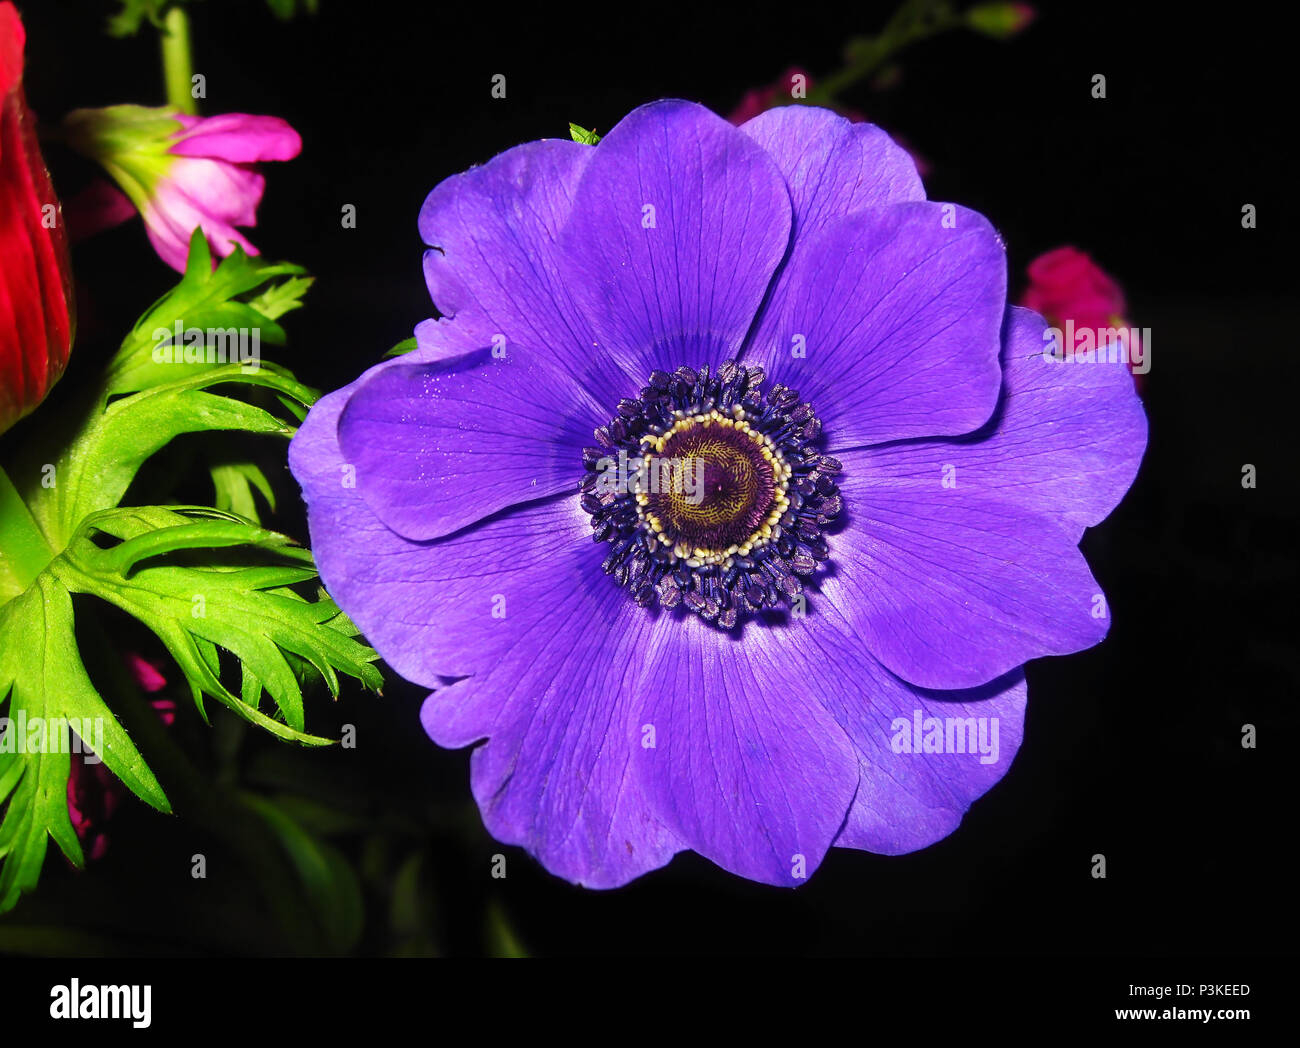 Blooming Purple Anemone Flower With Big Purple Petals Spring